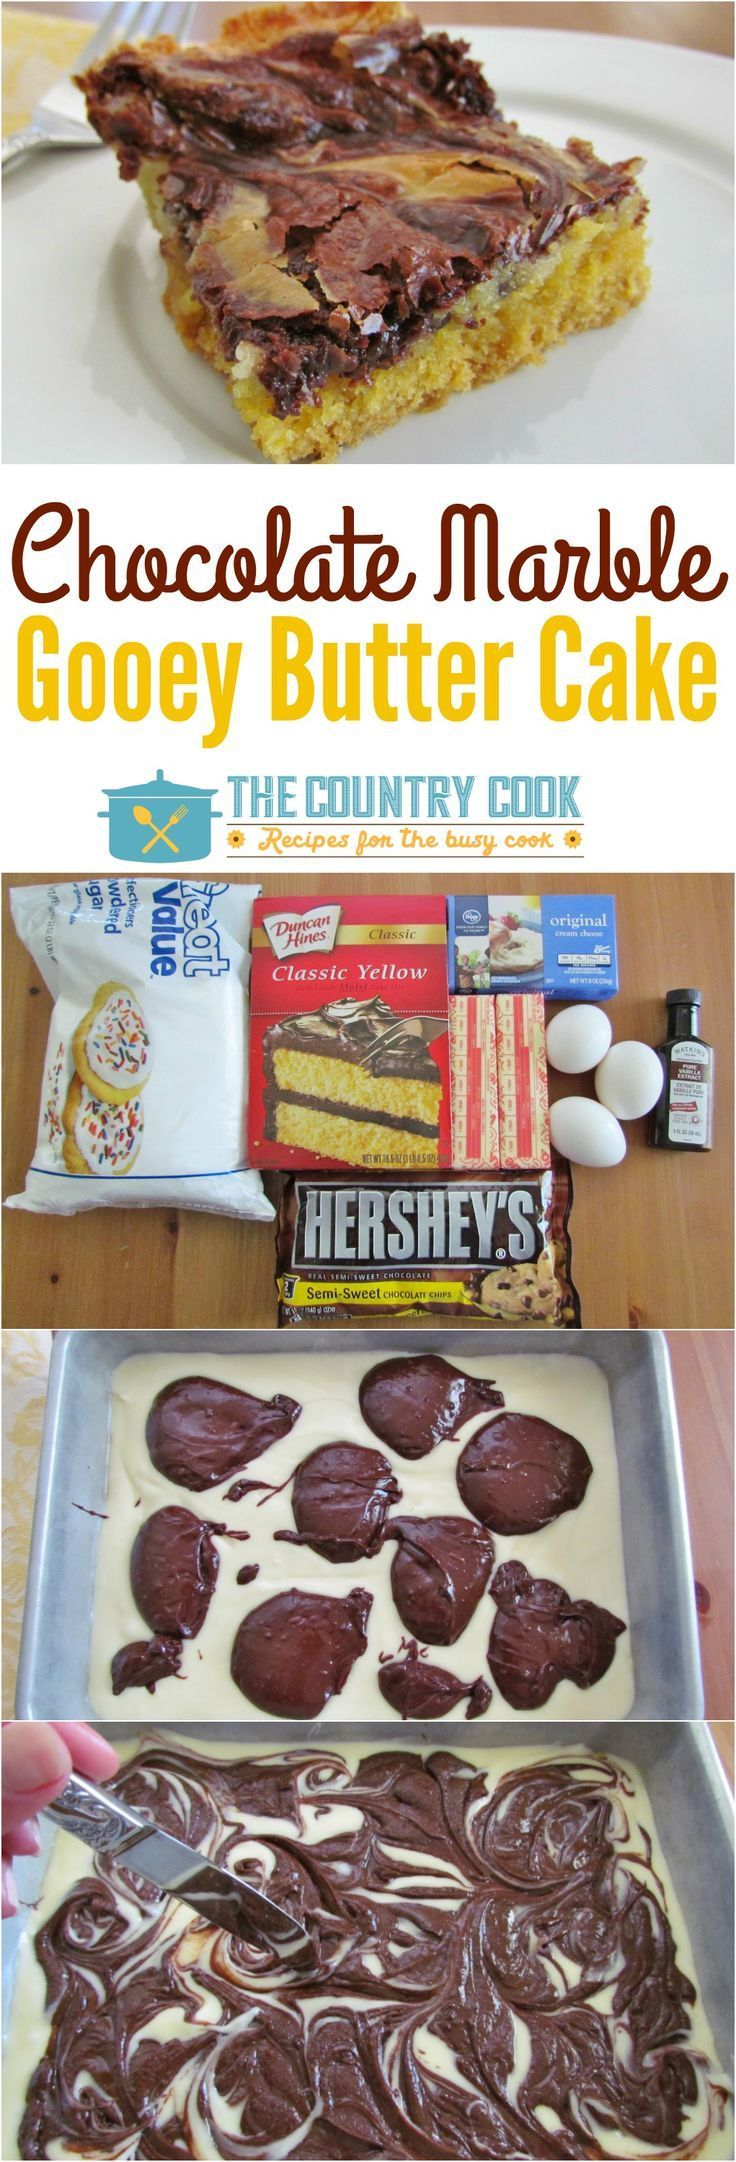 Chocolate Marble Gooey Butter Cake is the best of both worlds. And it is so easy because it uses a boxed cake mix as the base! So yummy!